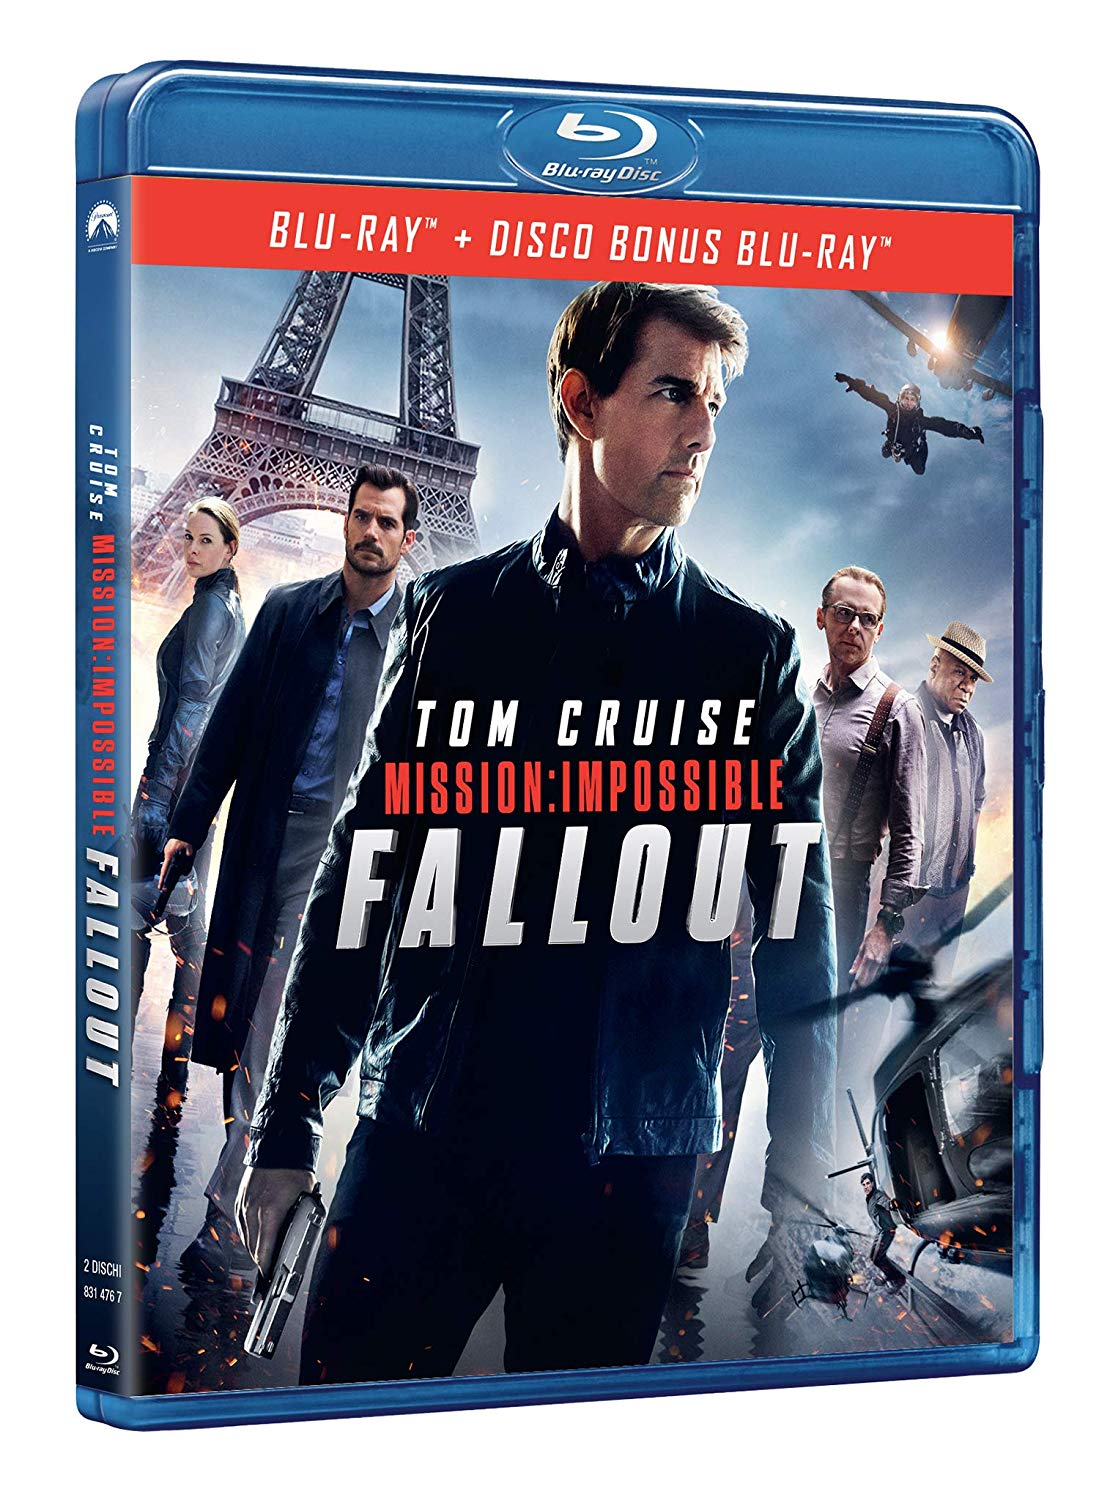 mission_impossible_fallout_blu_ray.jpg